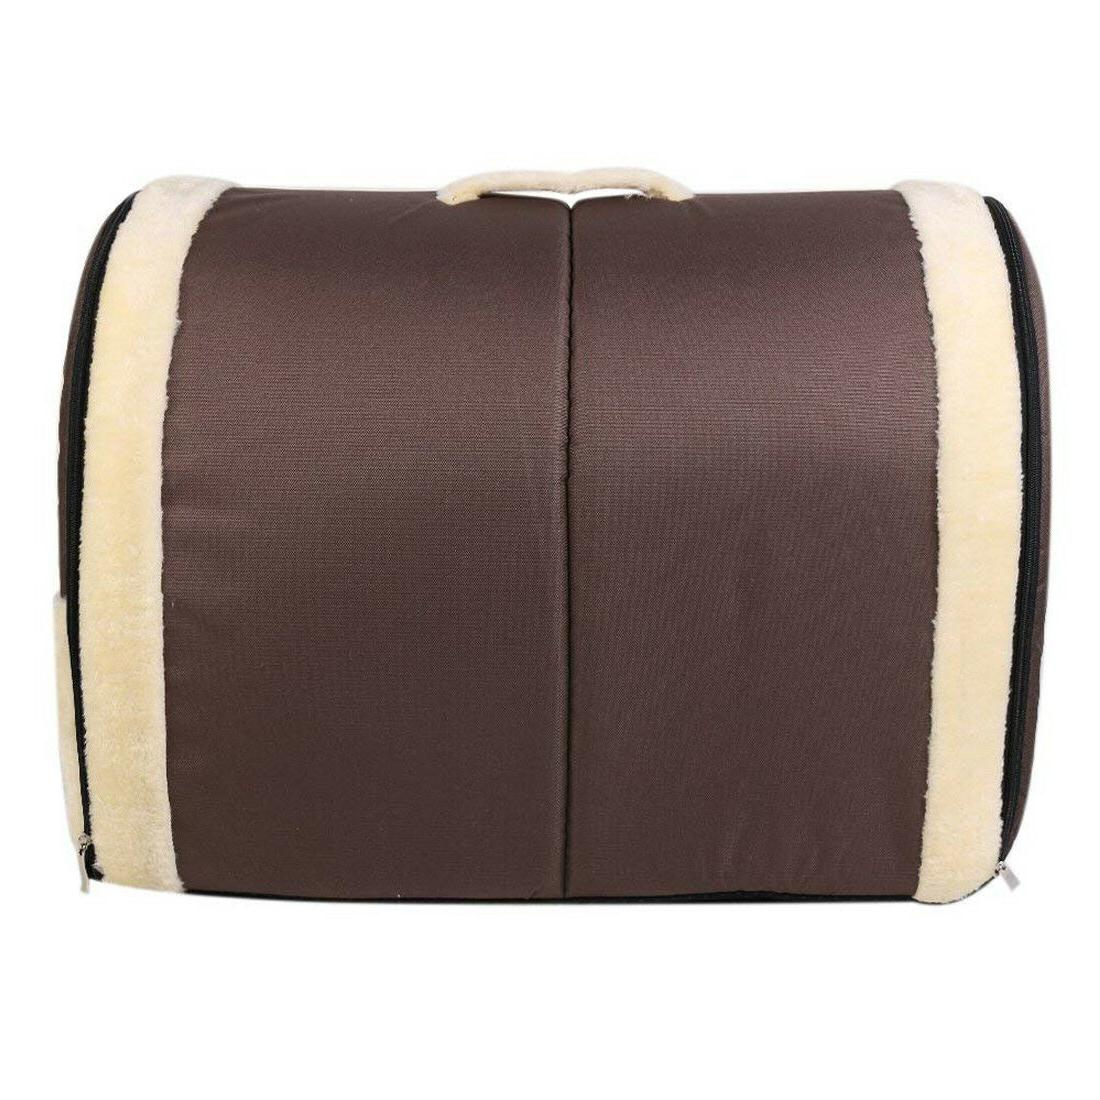 Pet Cat Bed Puppy Sofa 2in1 Warm Kennel Pad w & Handle